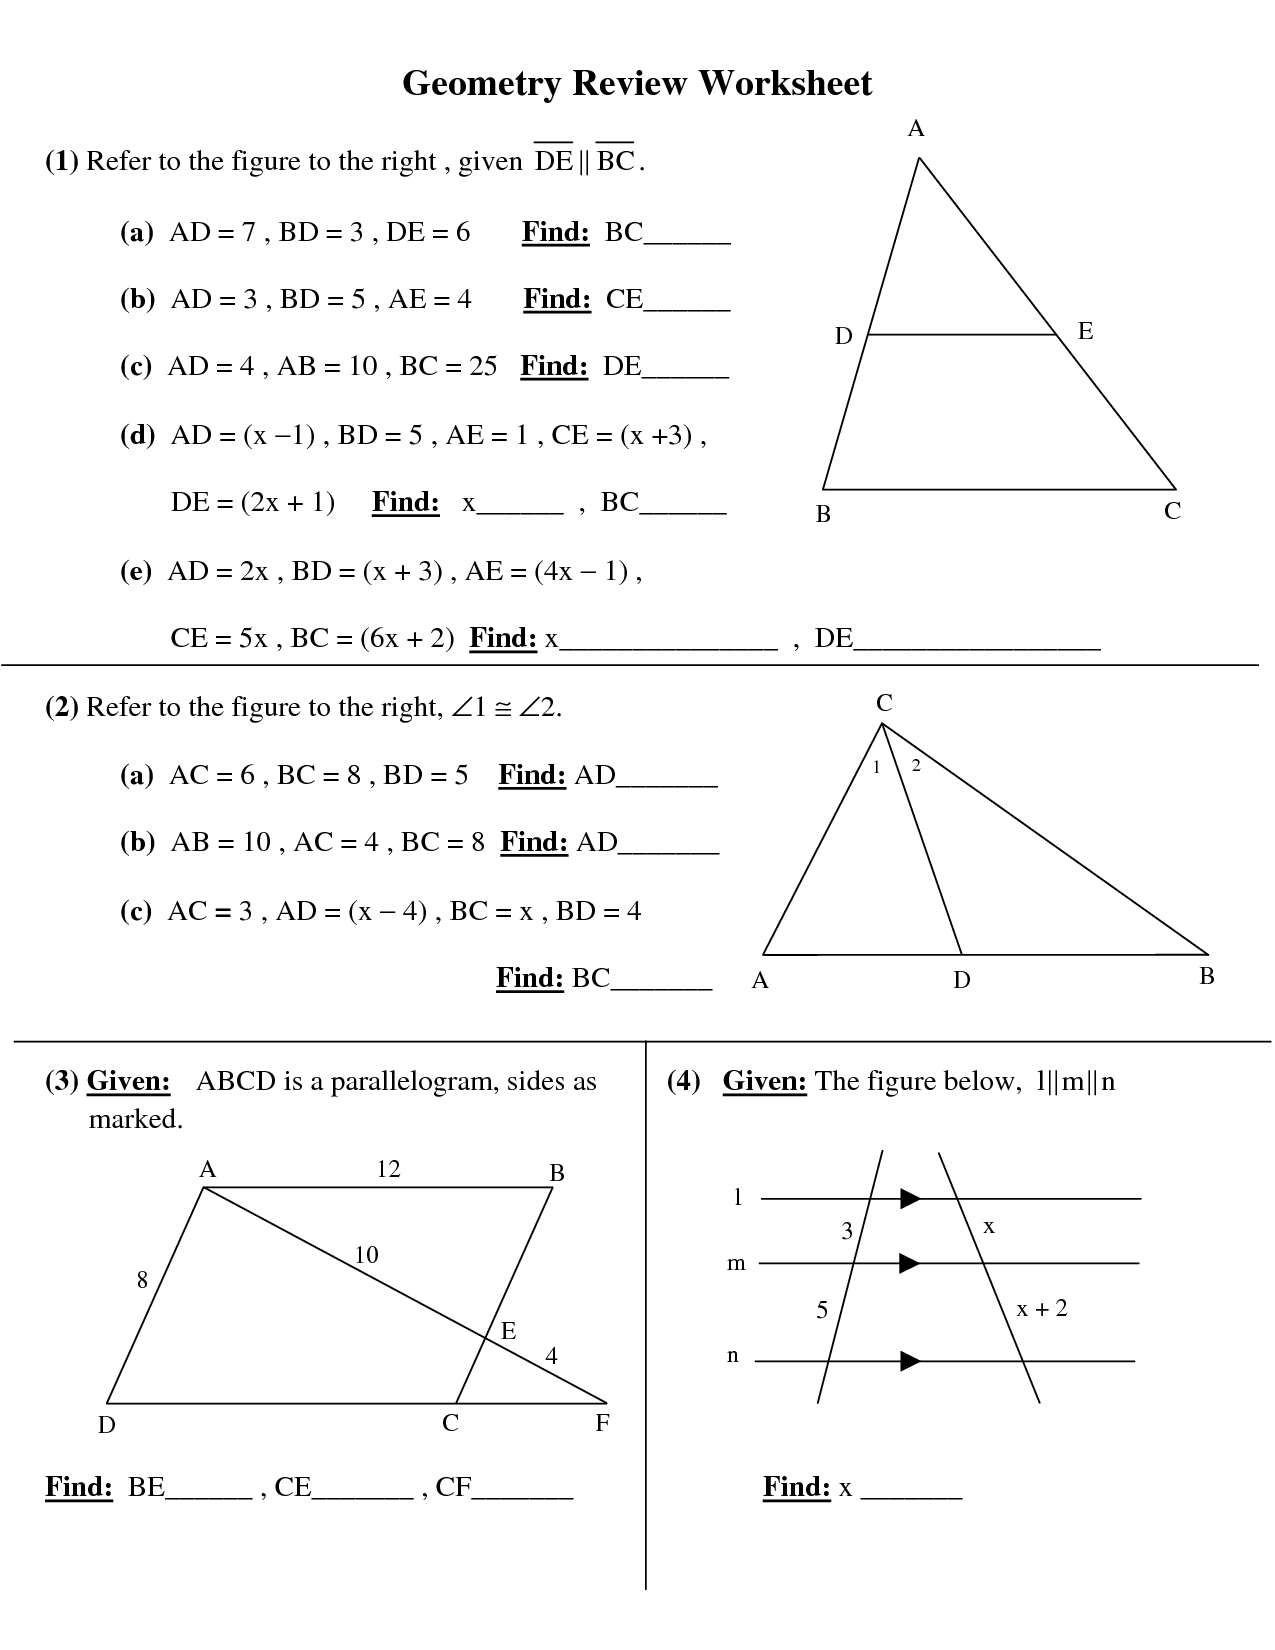 Basic geometry review sheet